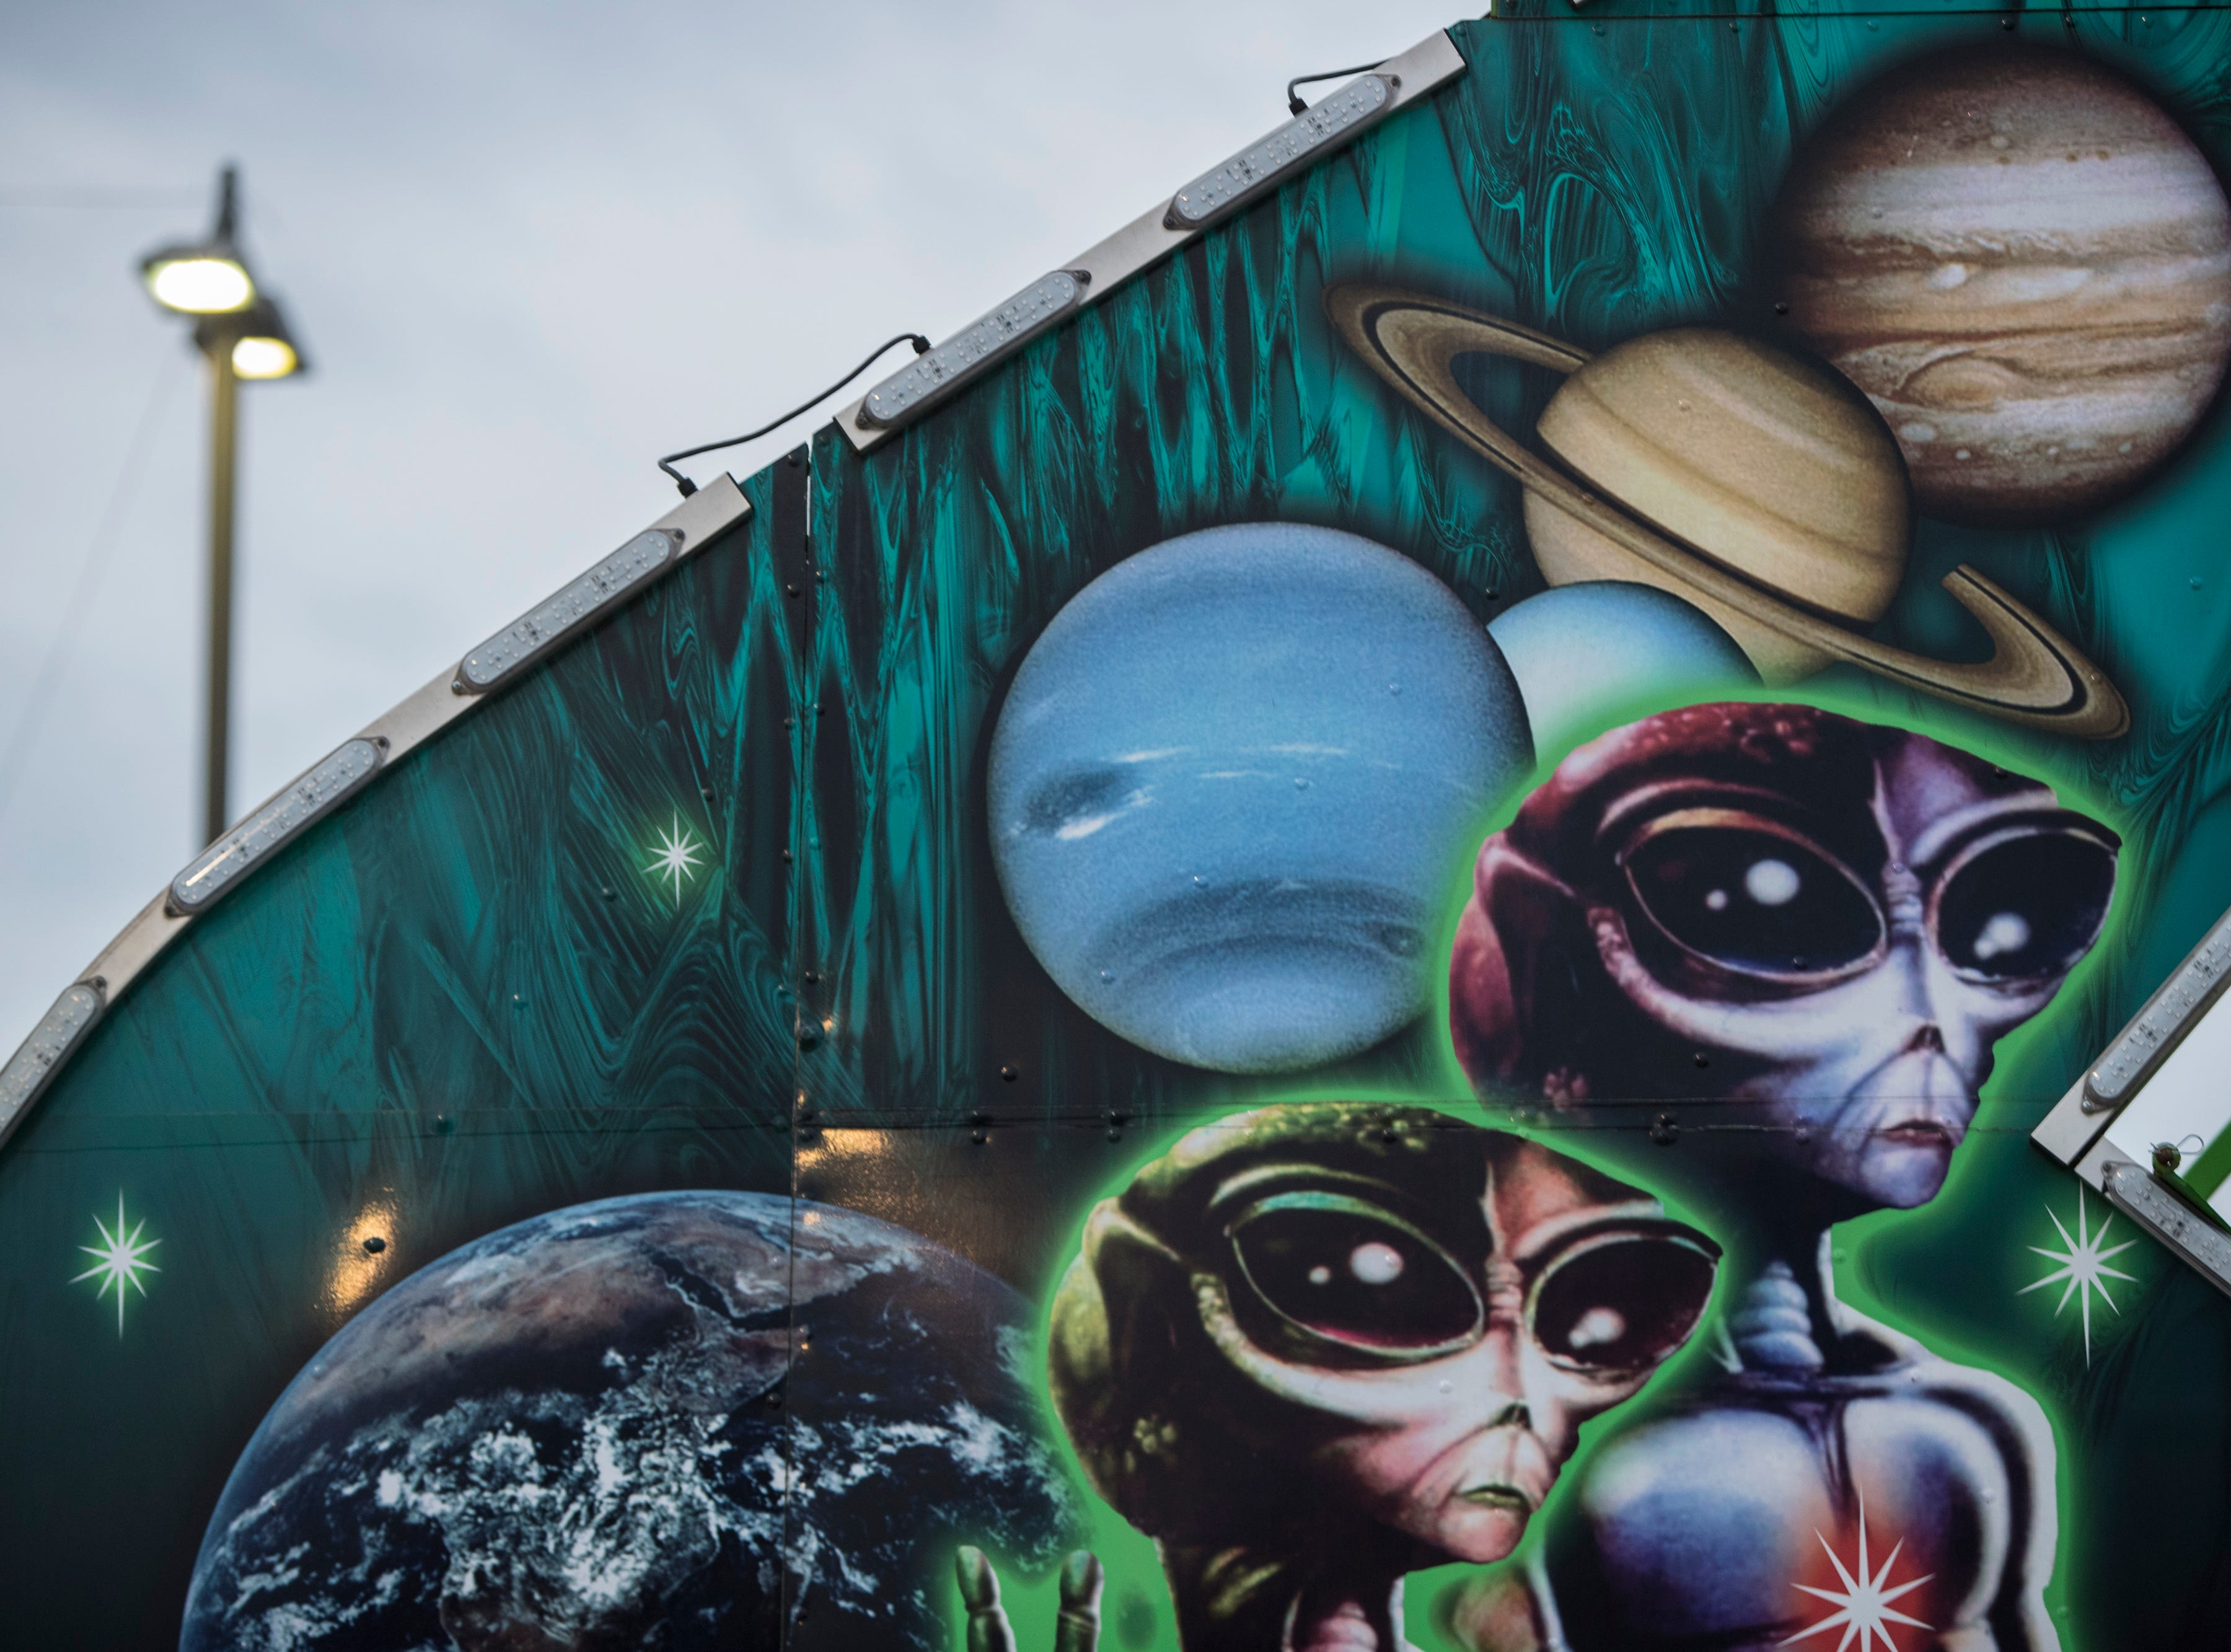 Space aliens graced the front of a midway ride at the Kentucky State Fair. Aug. 17, 2018.